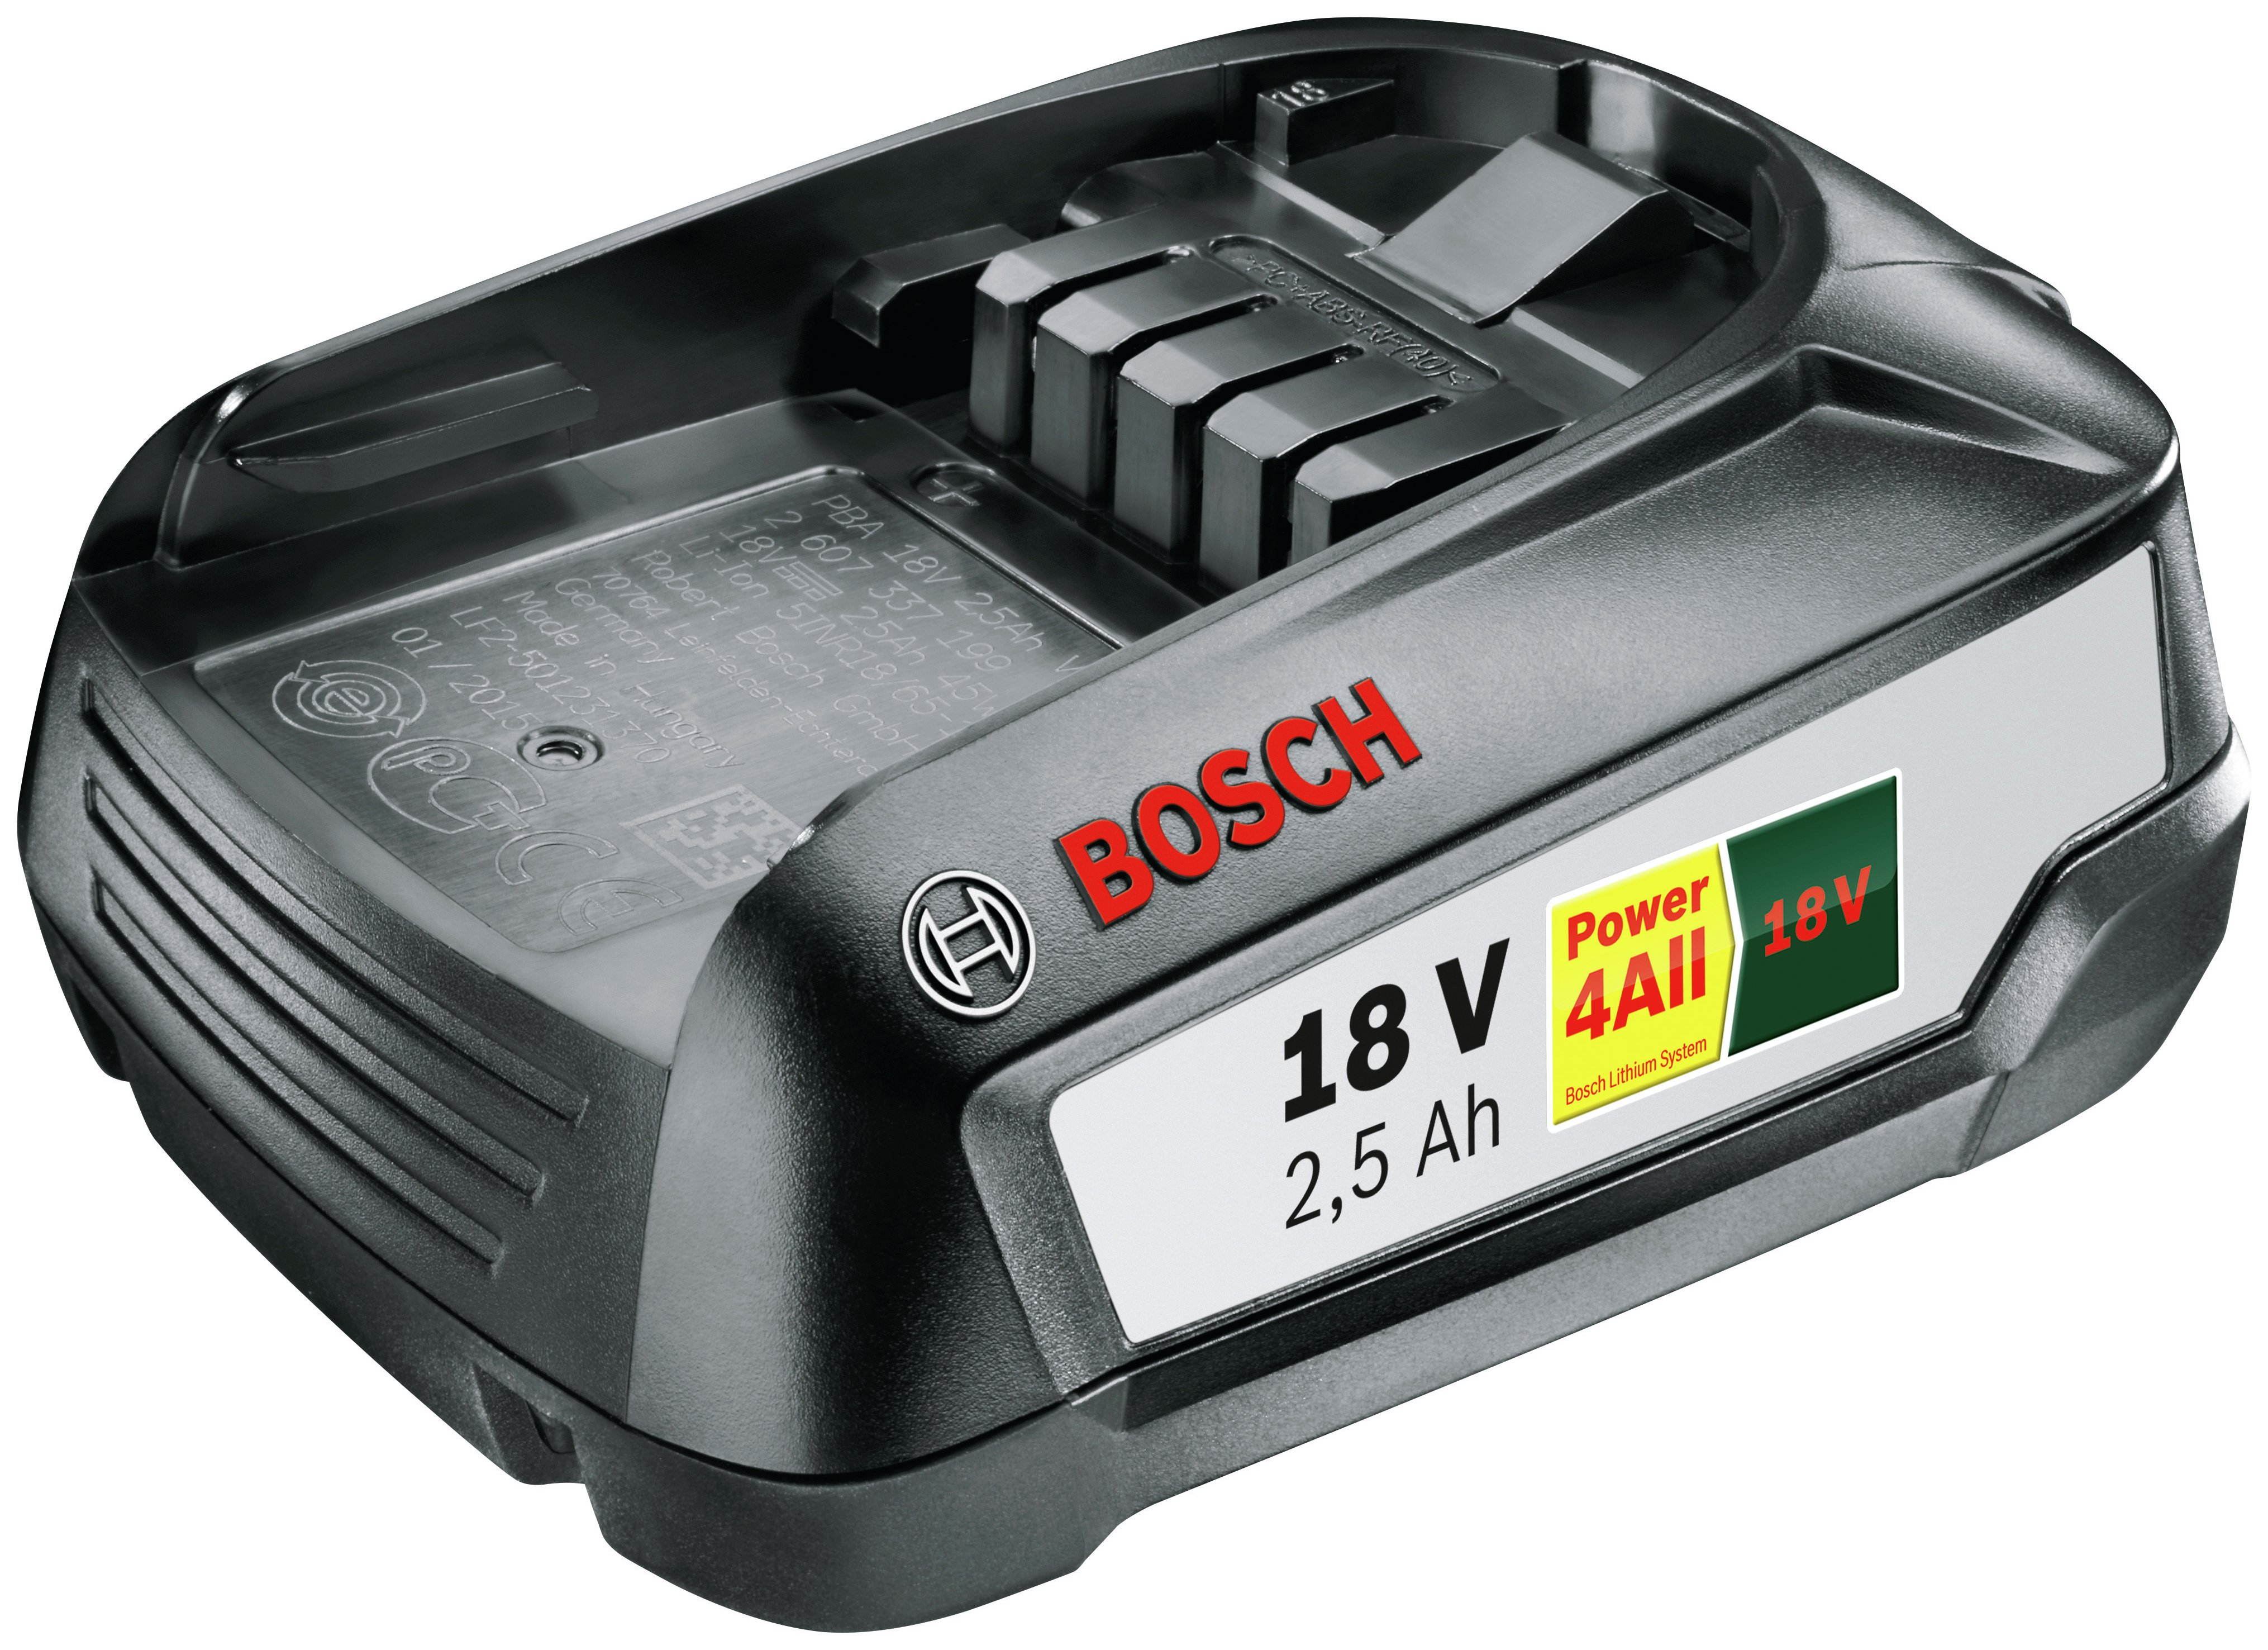 Image of Bosch 18V/2.5Ah Lithium-Ion Battery